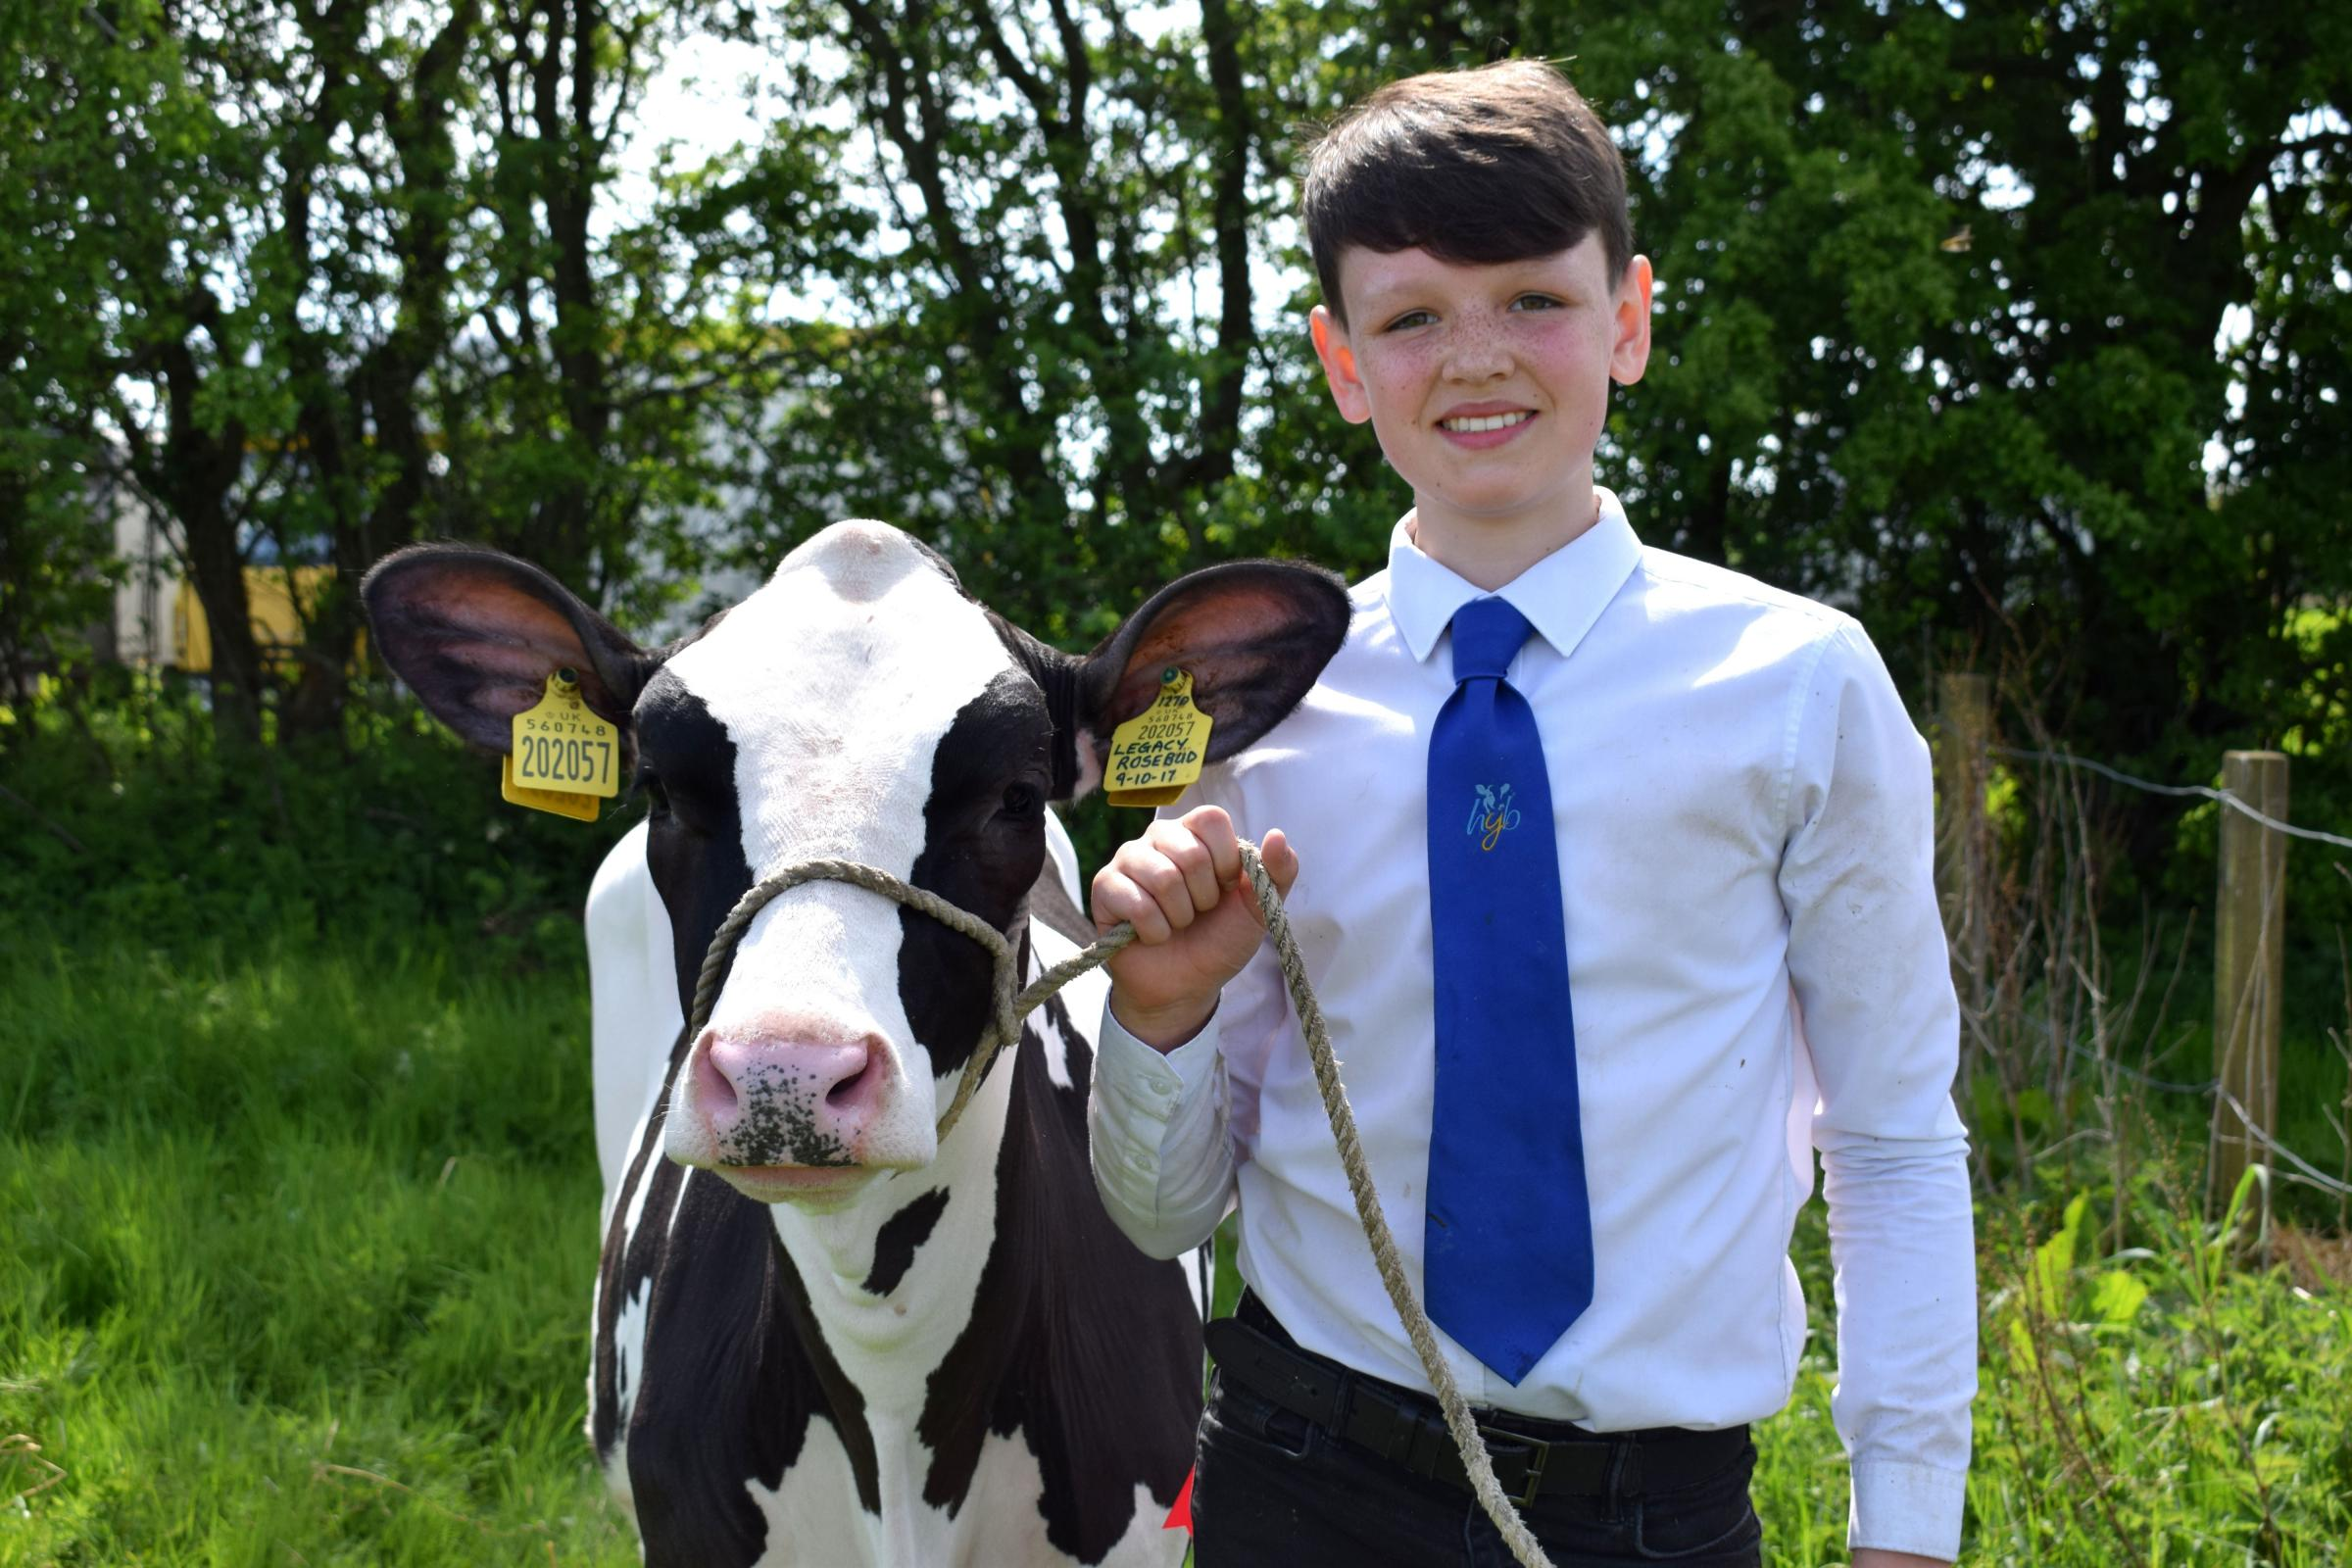 HAPPIER TIMES Mark Bryson, from Dykehead, Lesmahagow, pictured with his champion Holstein calf, Legacy Rosebud at a sunny Stonehouse Show last May